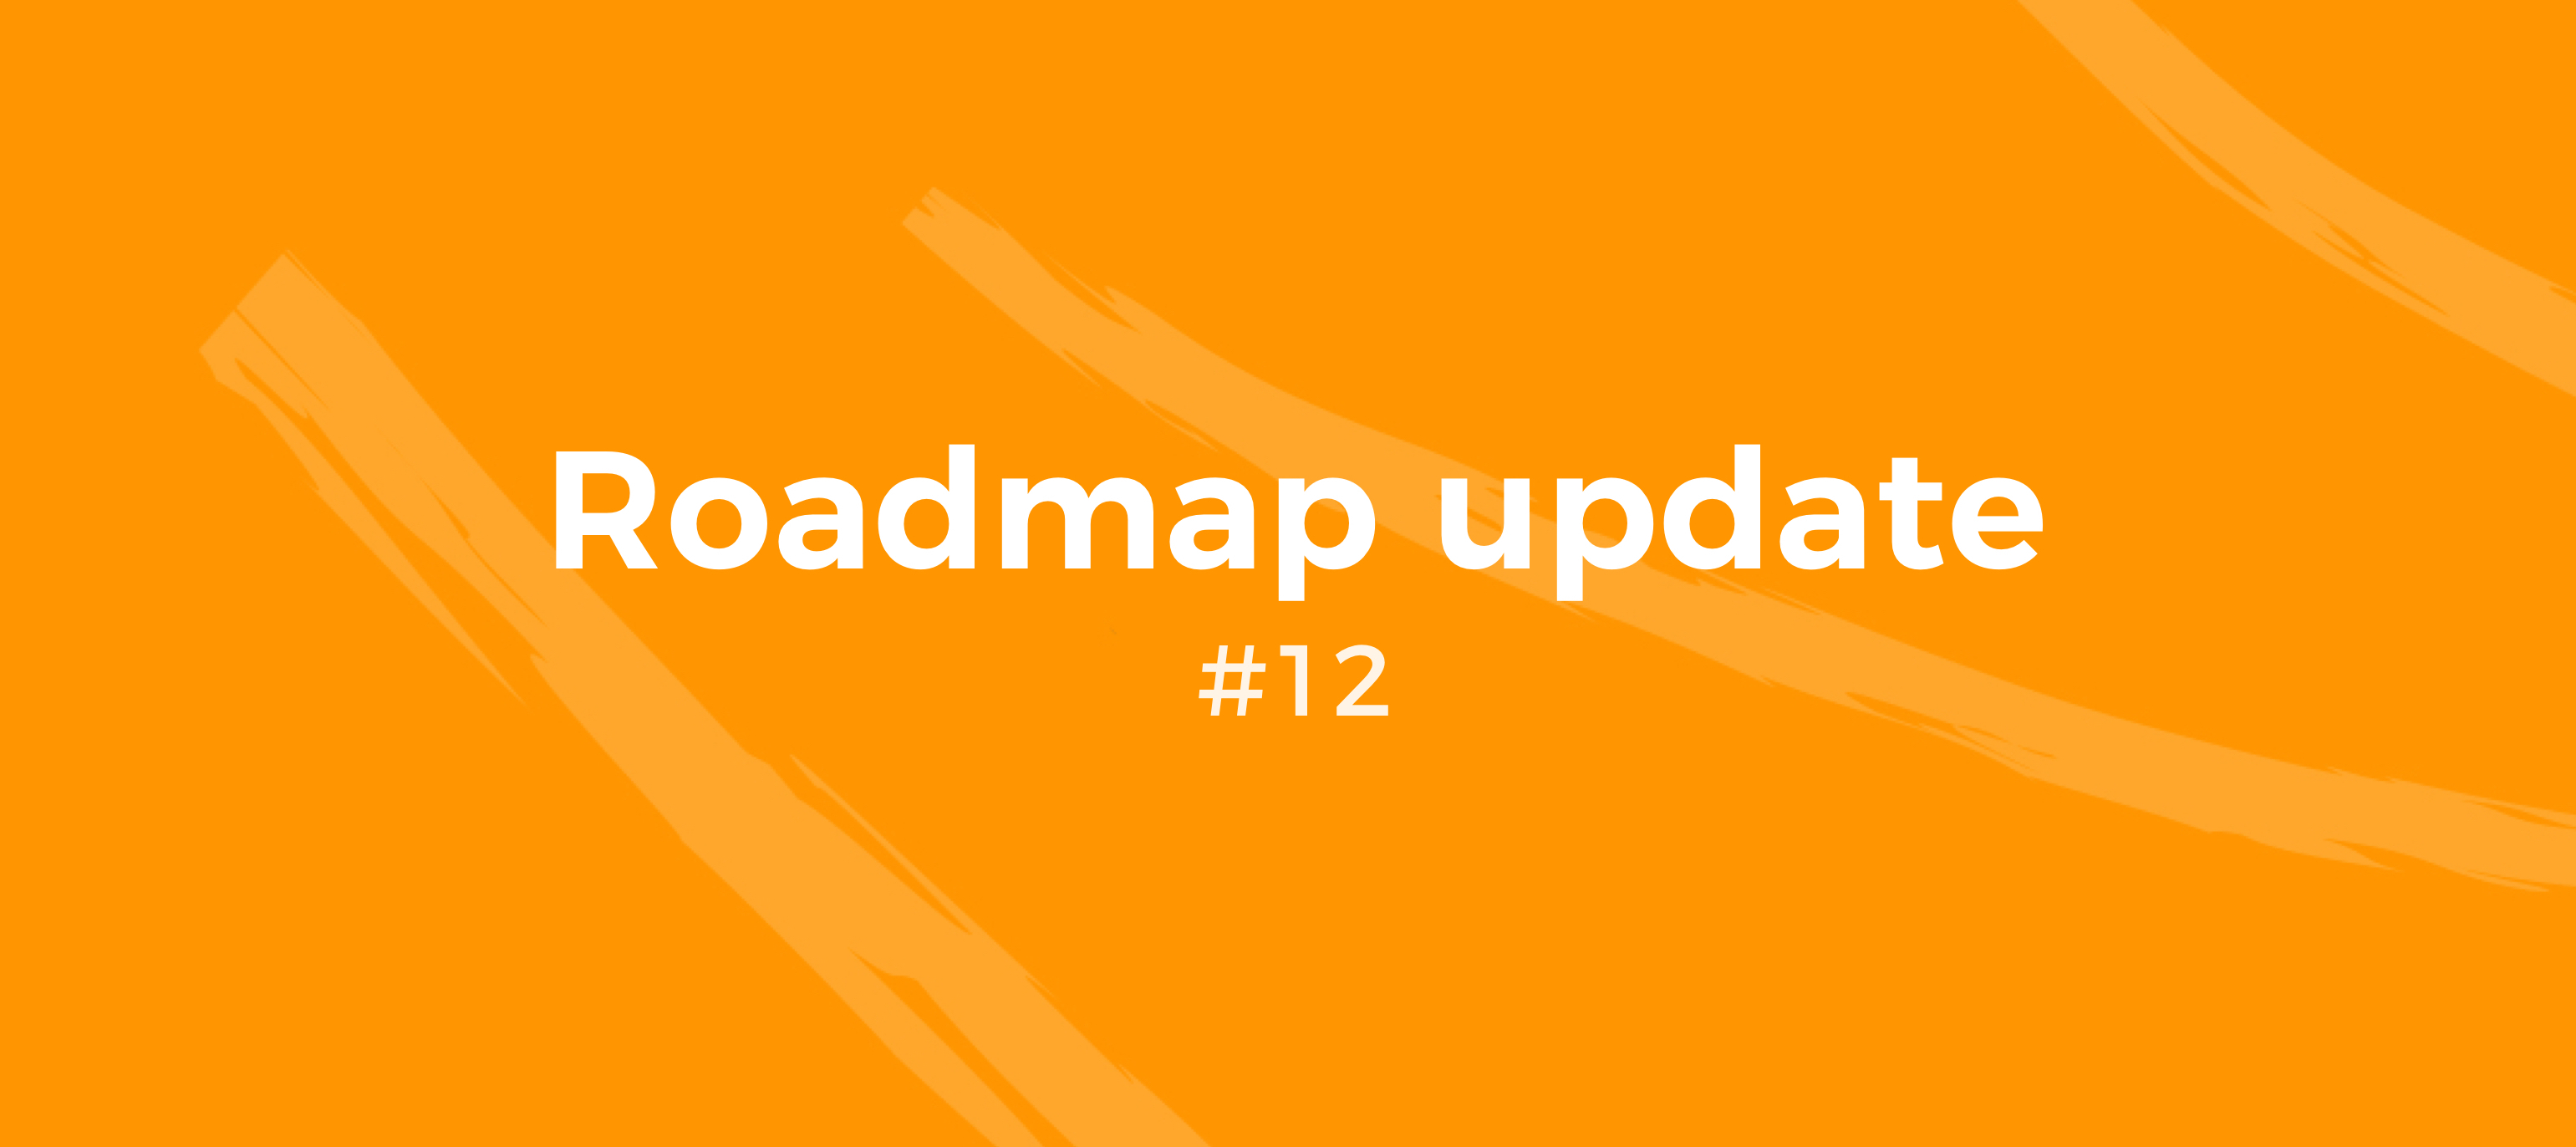 Roadmap Update #12